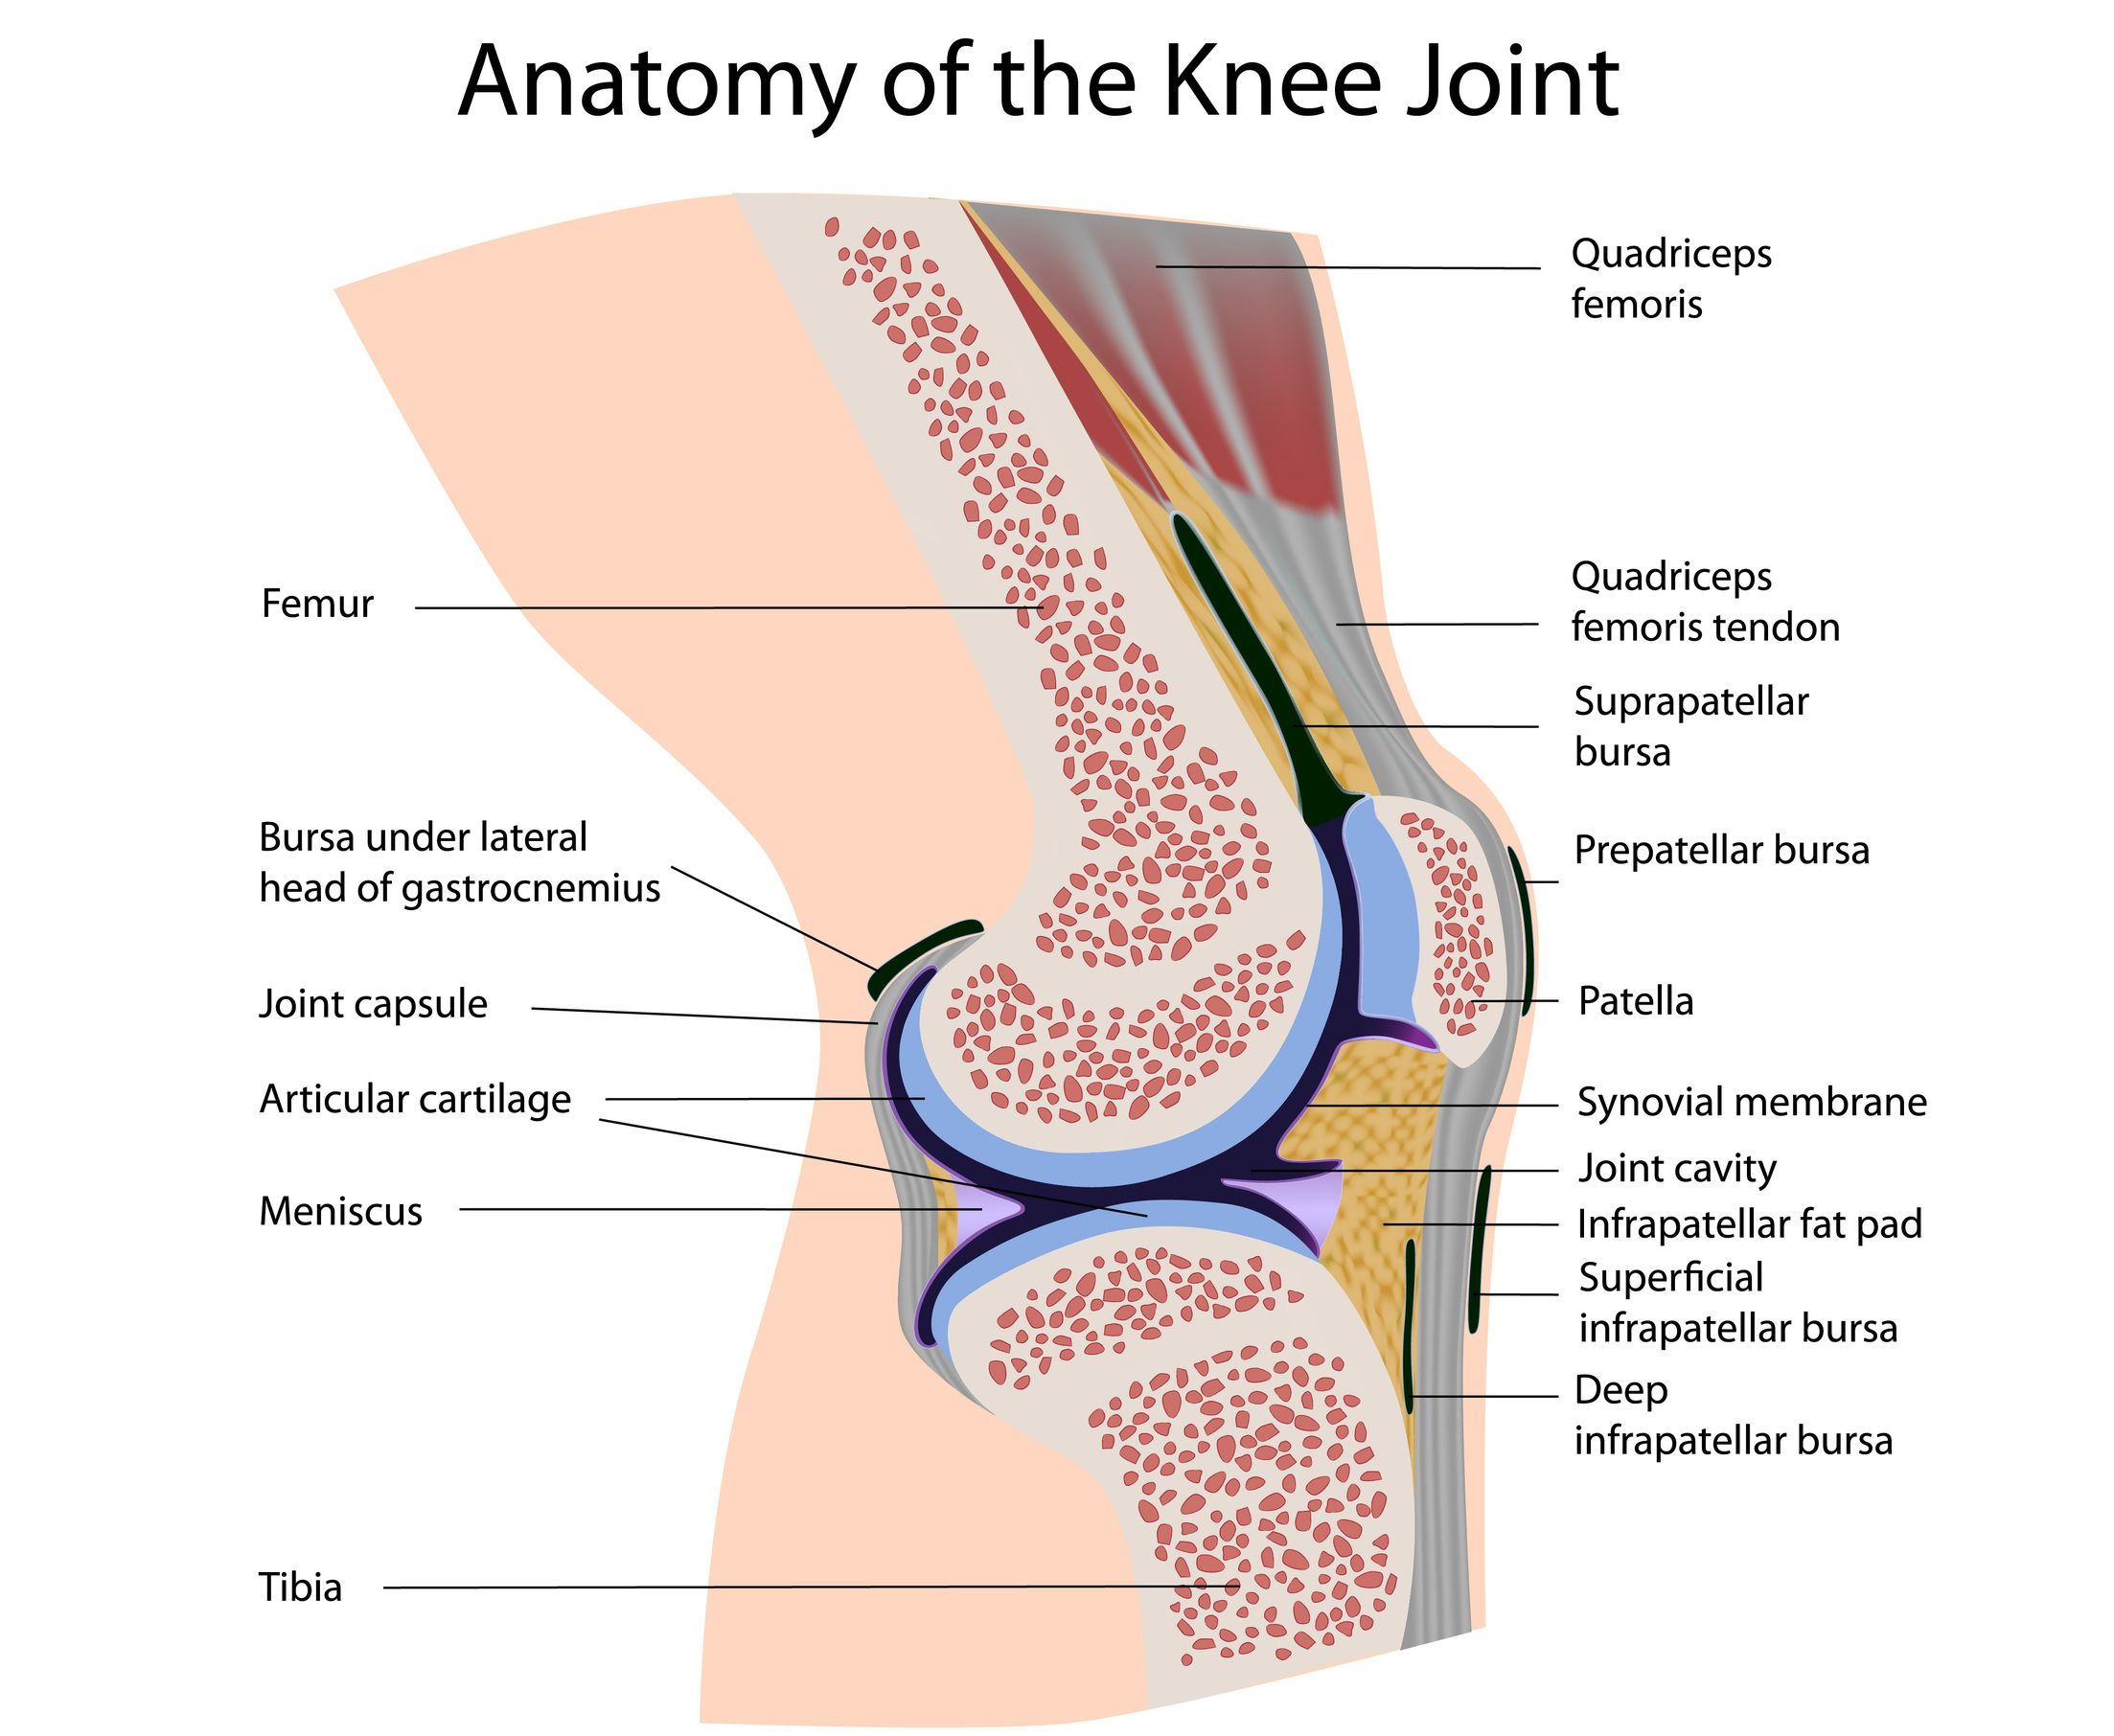 hight resolution of another important part of the knee anatomy is the muscles there are many muscles surrounding the knee joint but the biggest are the thigh muscles or the